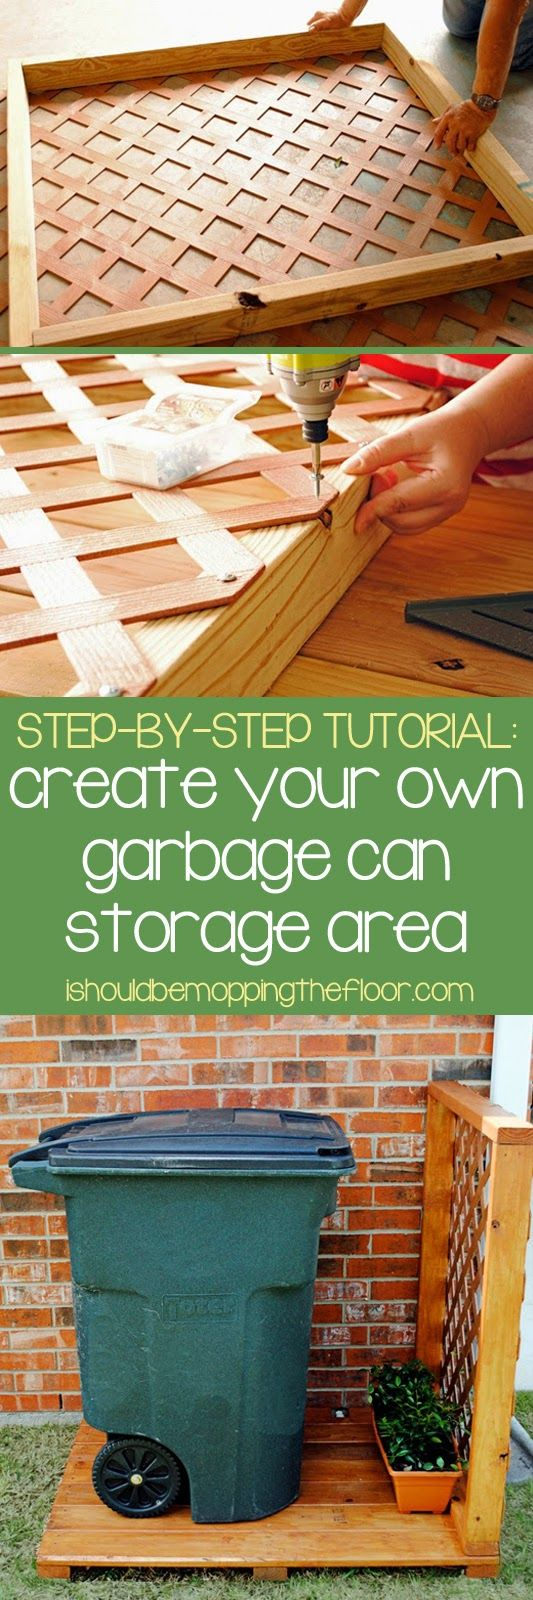 3 Create a Simple Garbage Can Storage Area